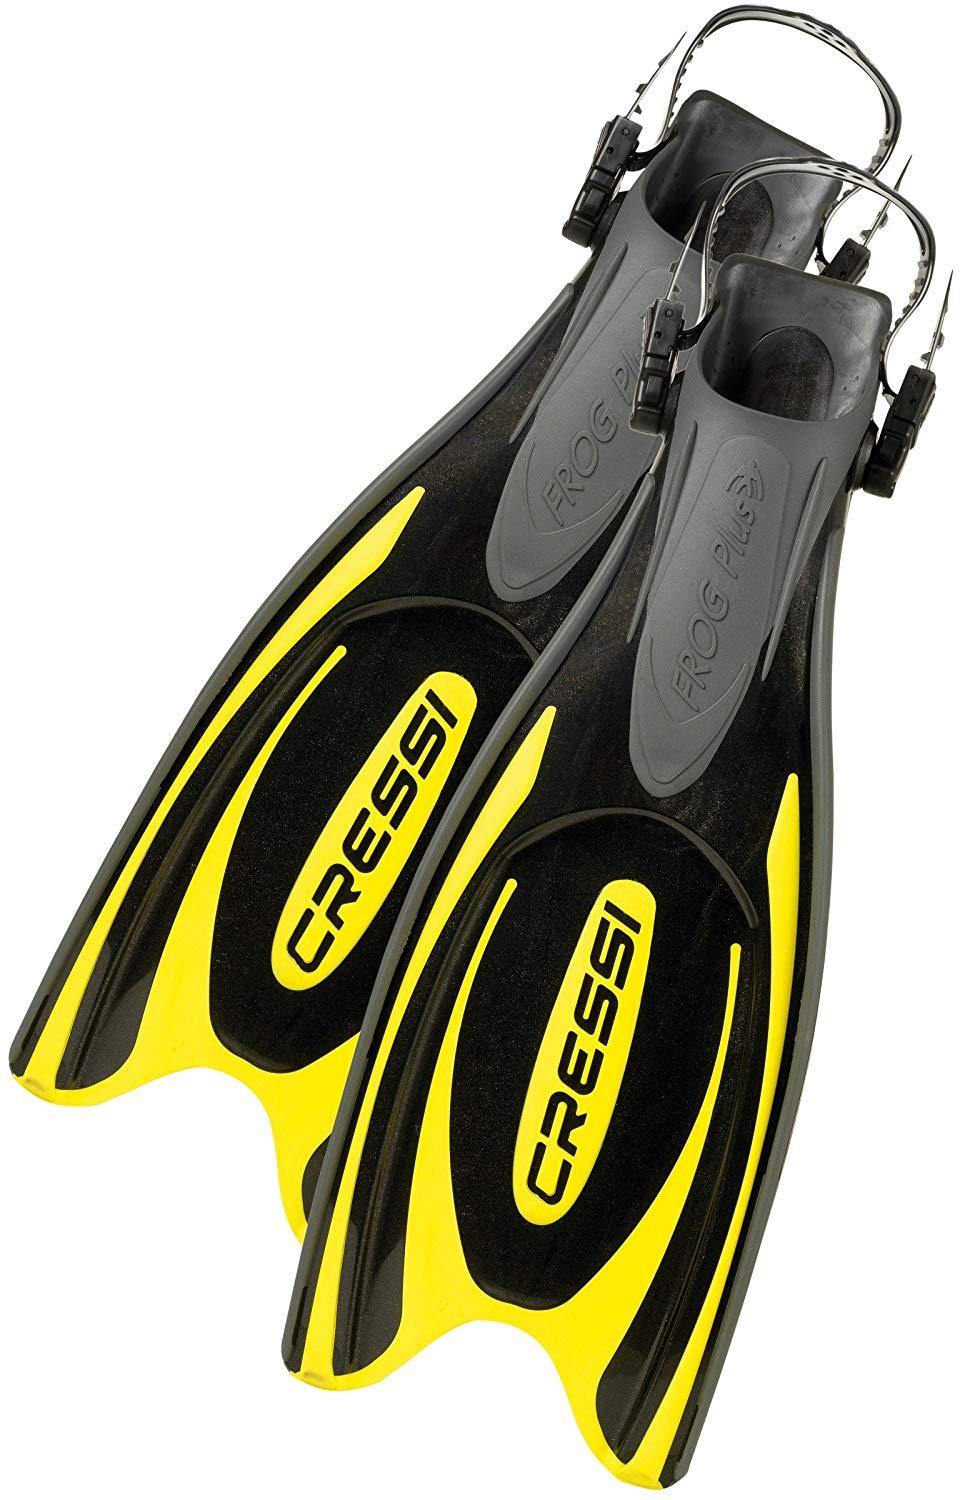 Cressi Adult Powerful Efficient Open Heel Scuba Diving Fins | Frog Plus made in Italy by quality since 1946